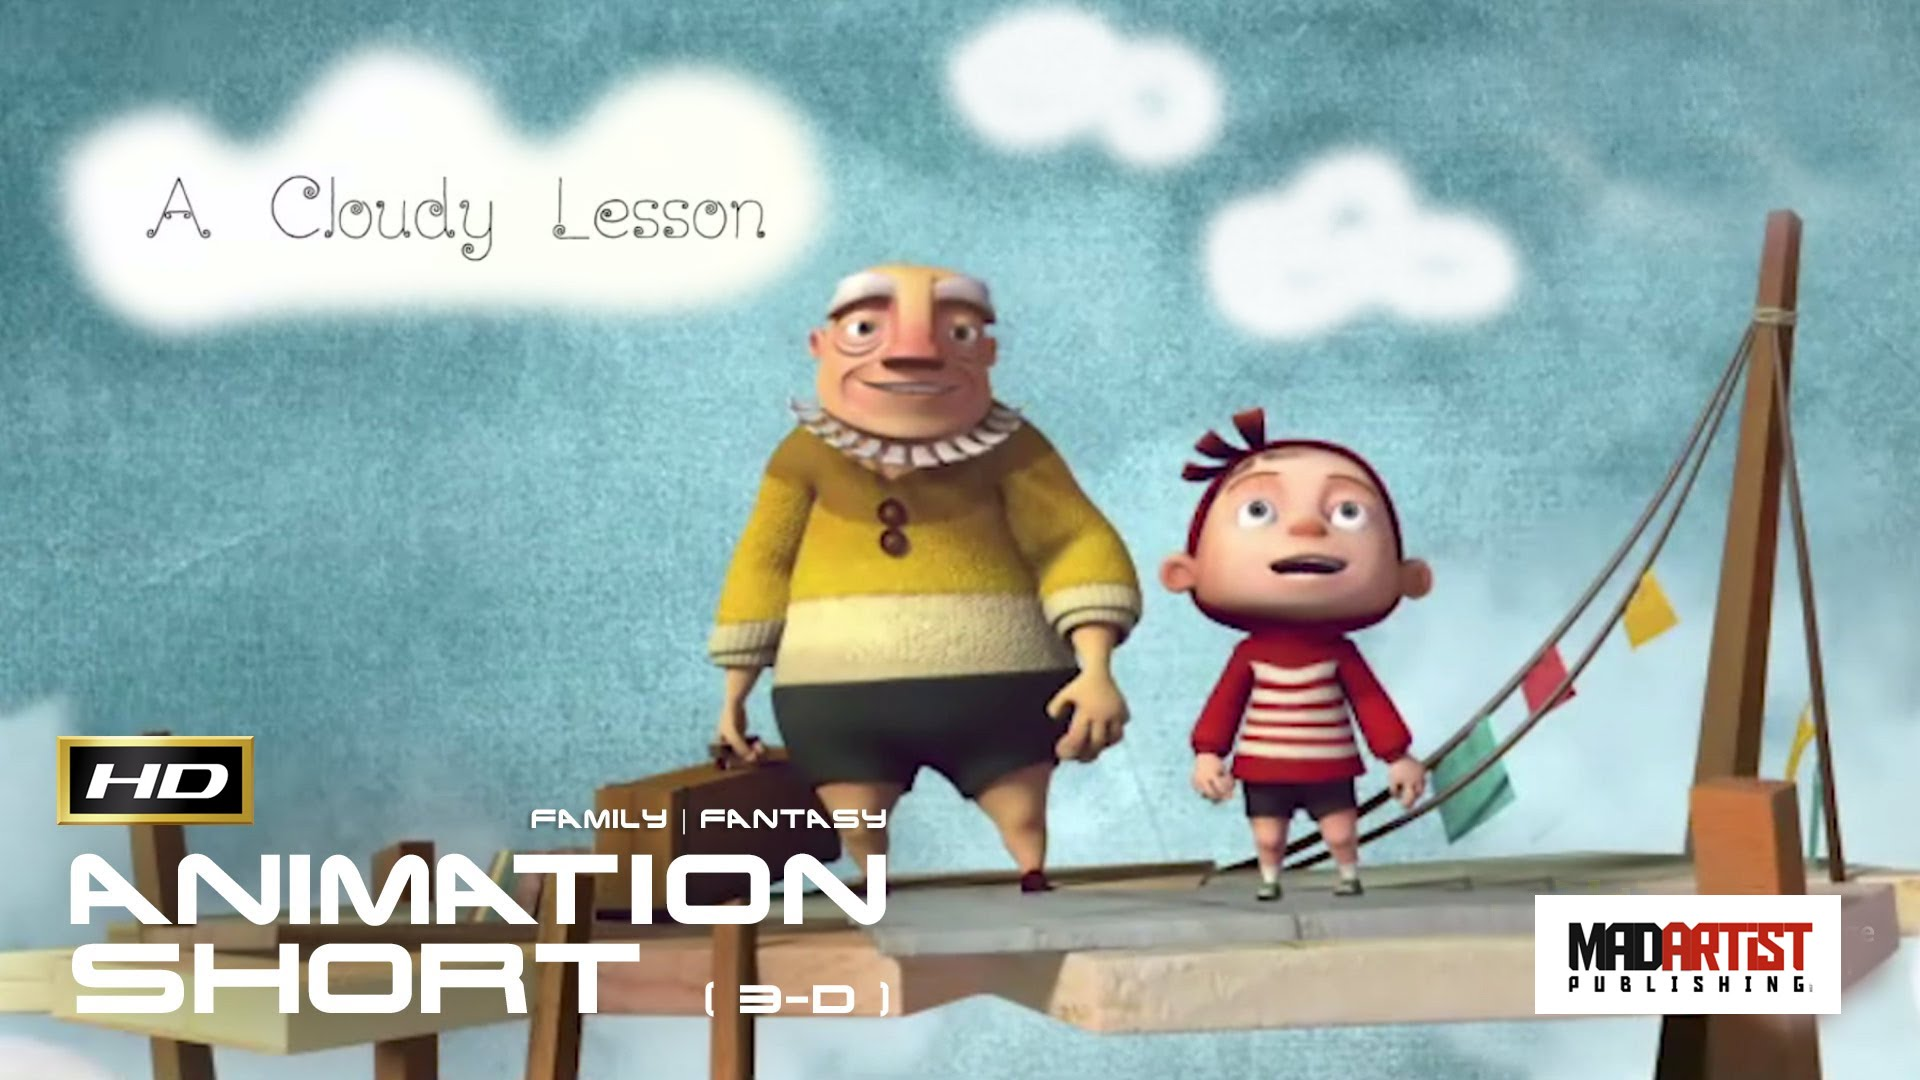 A CLOUDY LESSON - Creative 3D Animated Short